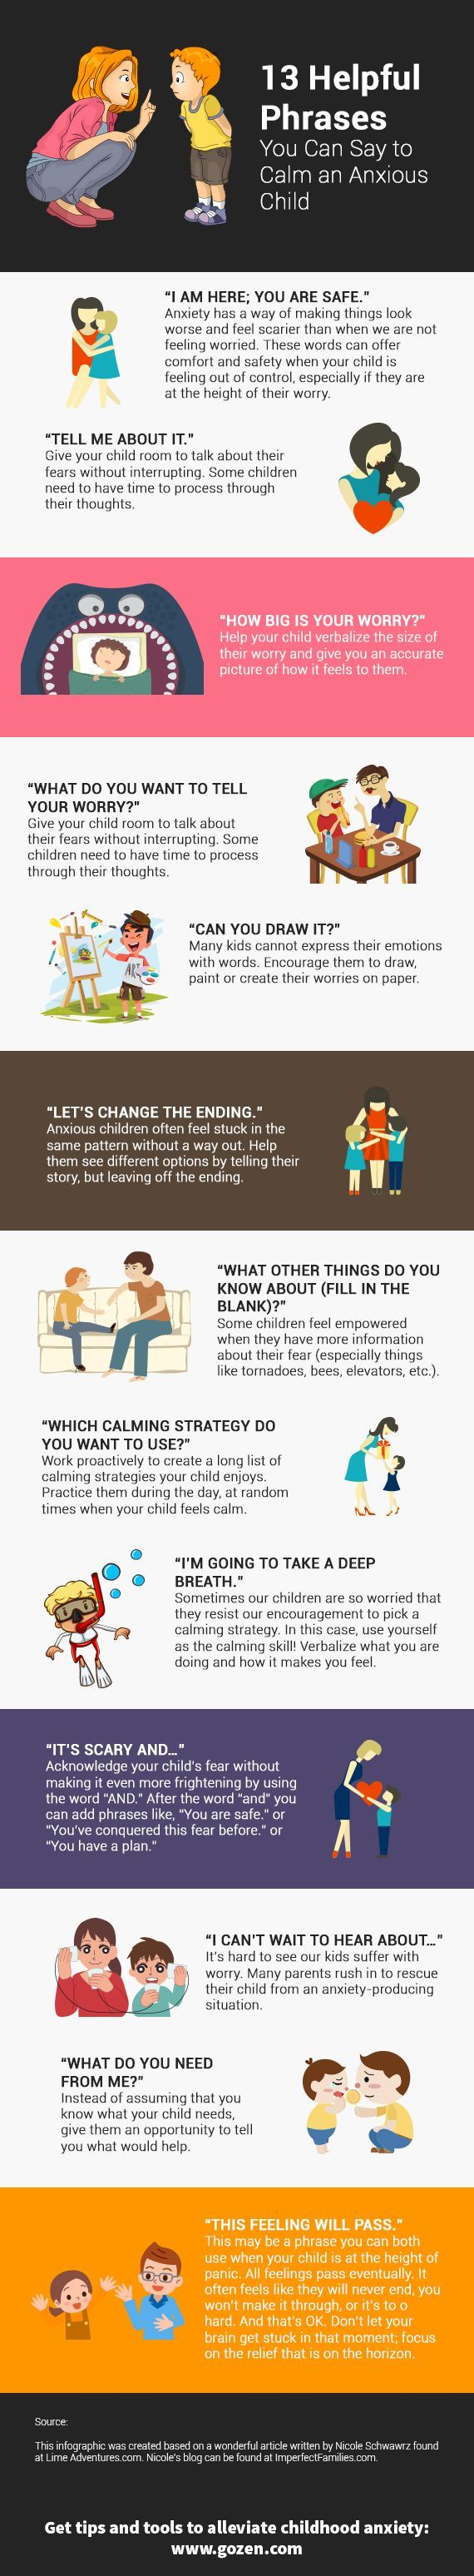 13 Helpful Phrases You Can Say To Calm >> 13 Helpful Phrases You Can Say To Calm An Anxious Child Infographic